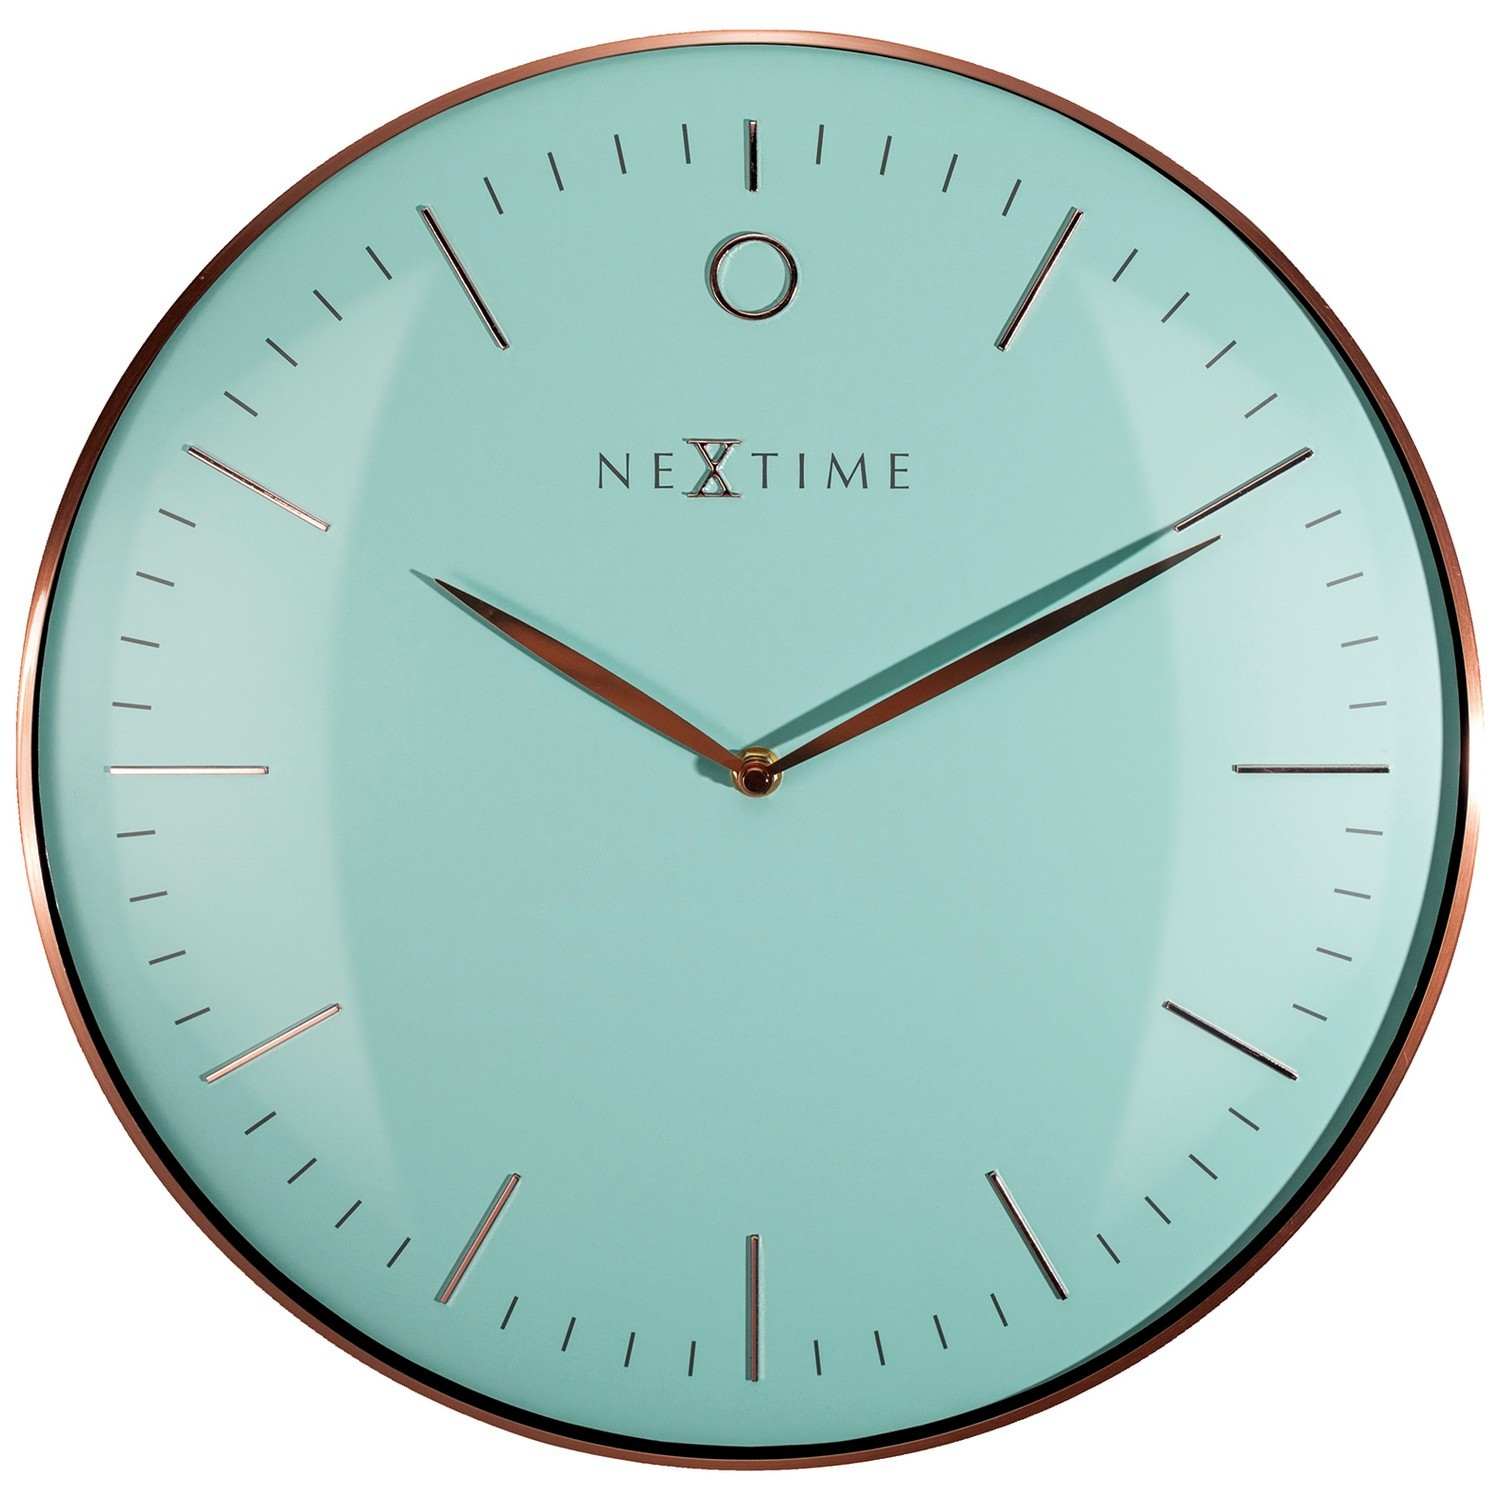 NeXtime Glamour Metal Frame Wall Clock, 40cm, Turquoise / Rose Gold